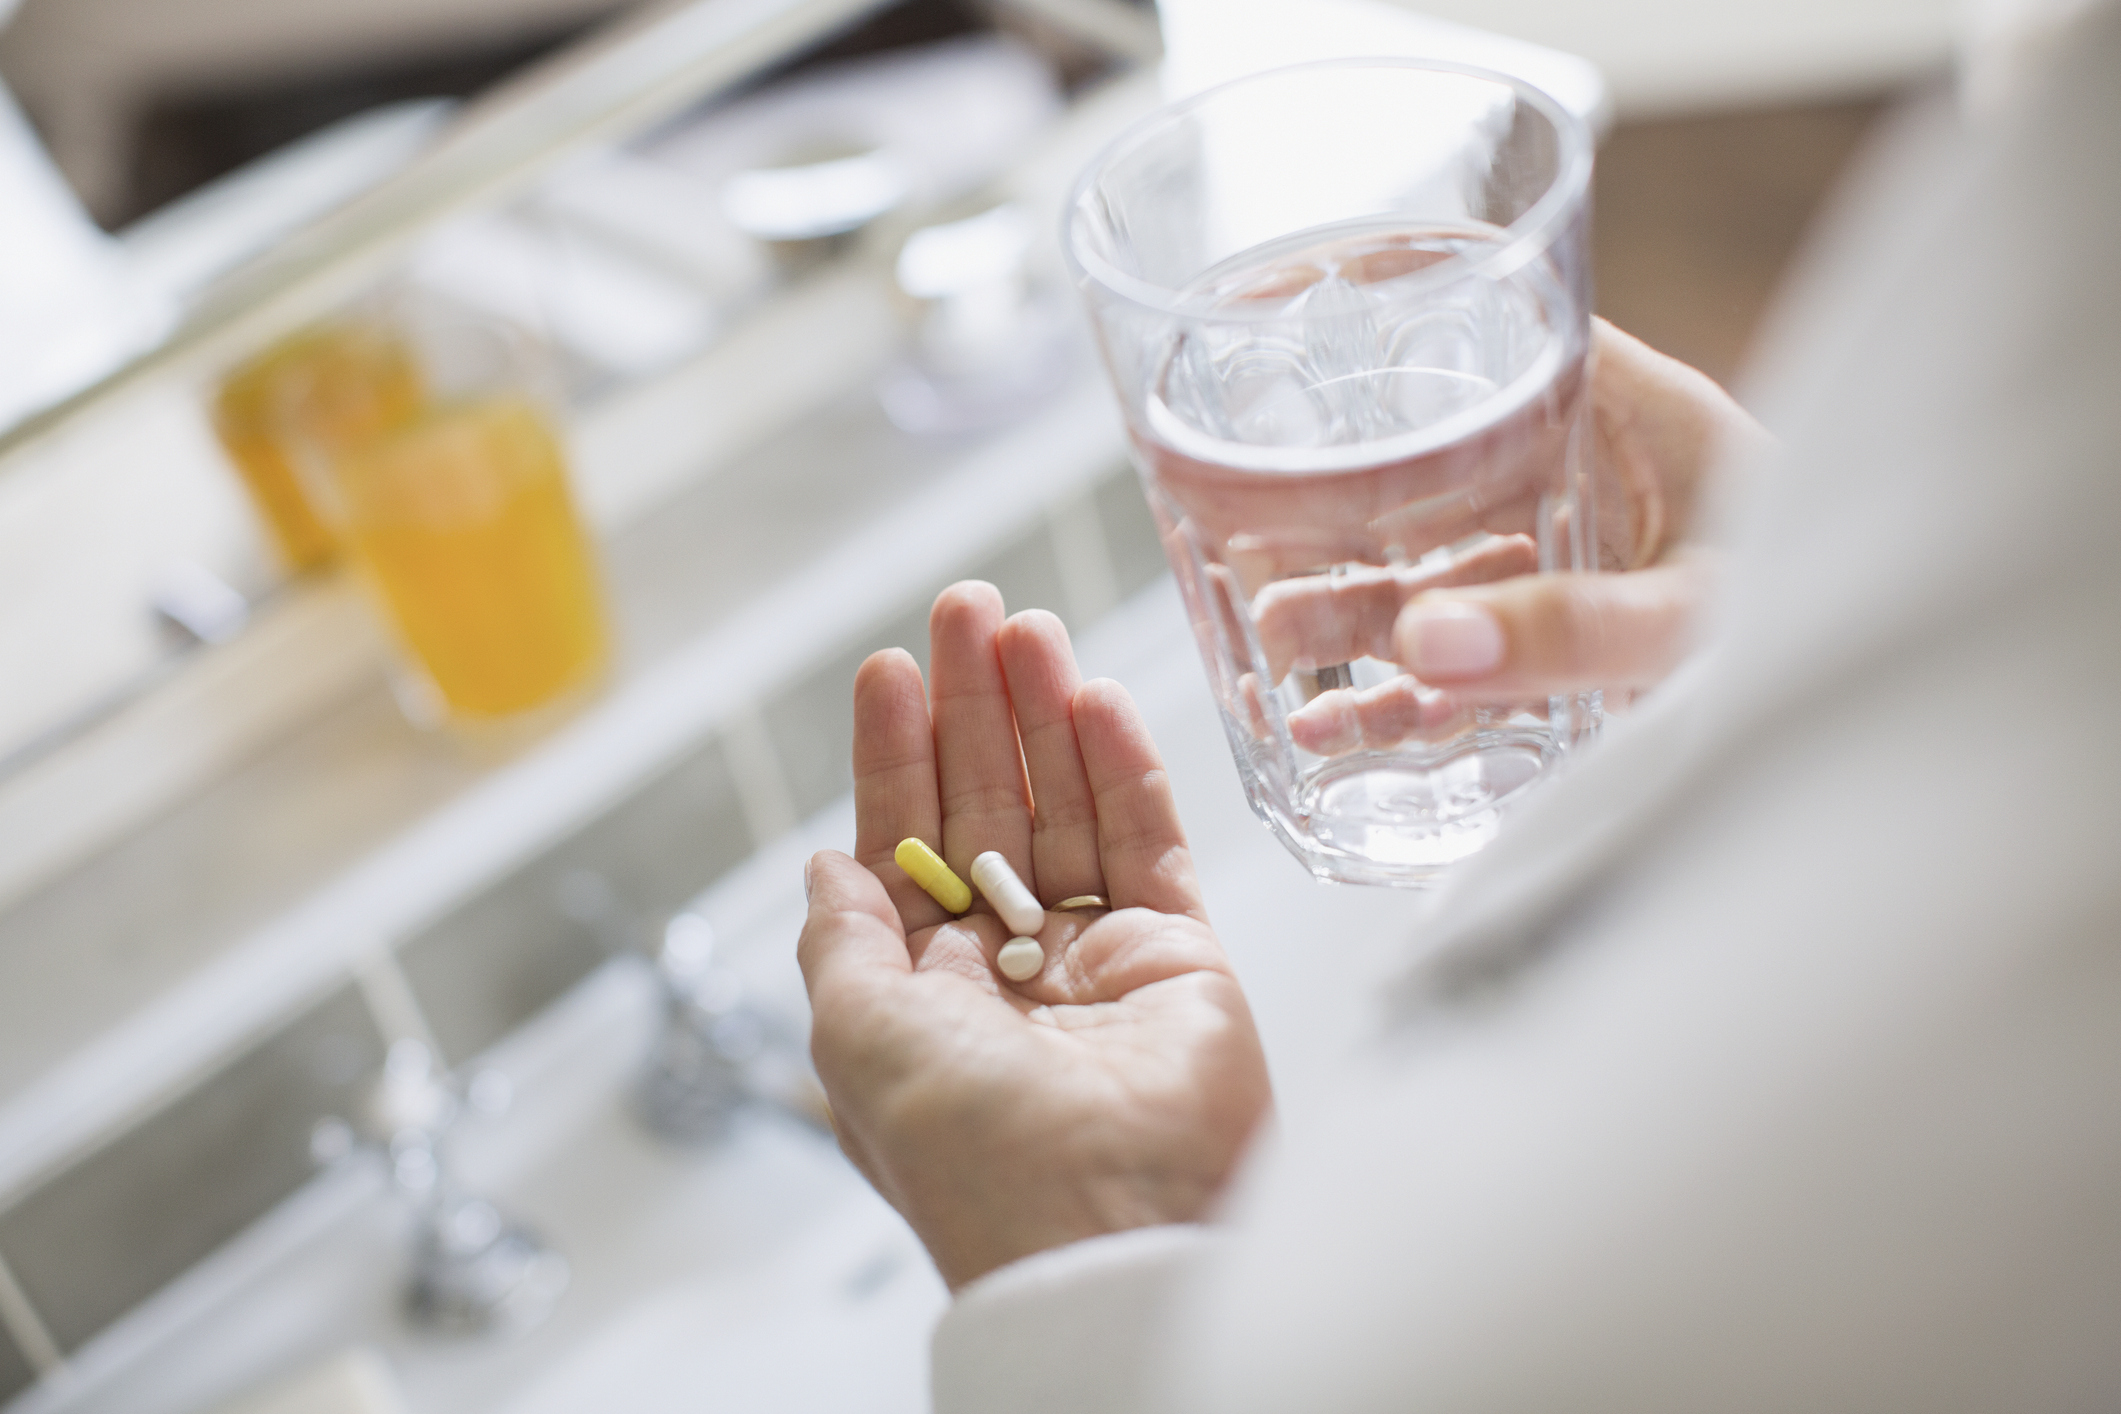 Most people should ditch the vitamin D and calcium supplements, study finds